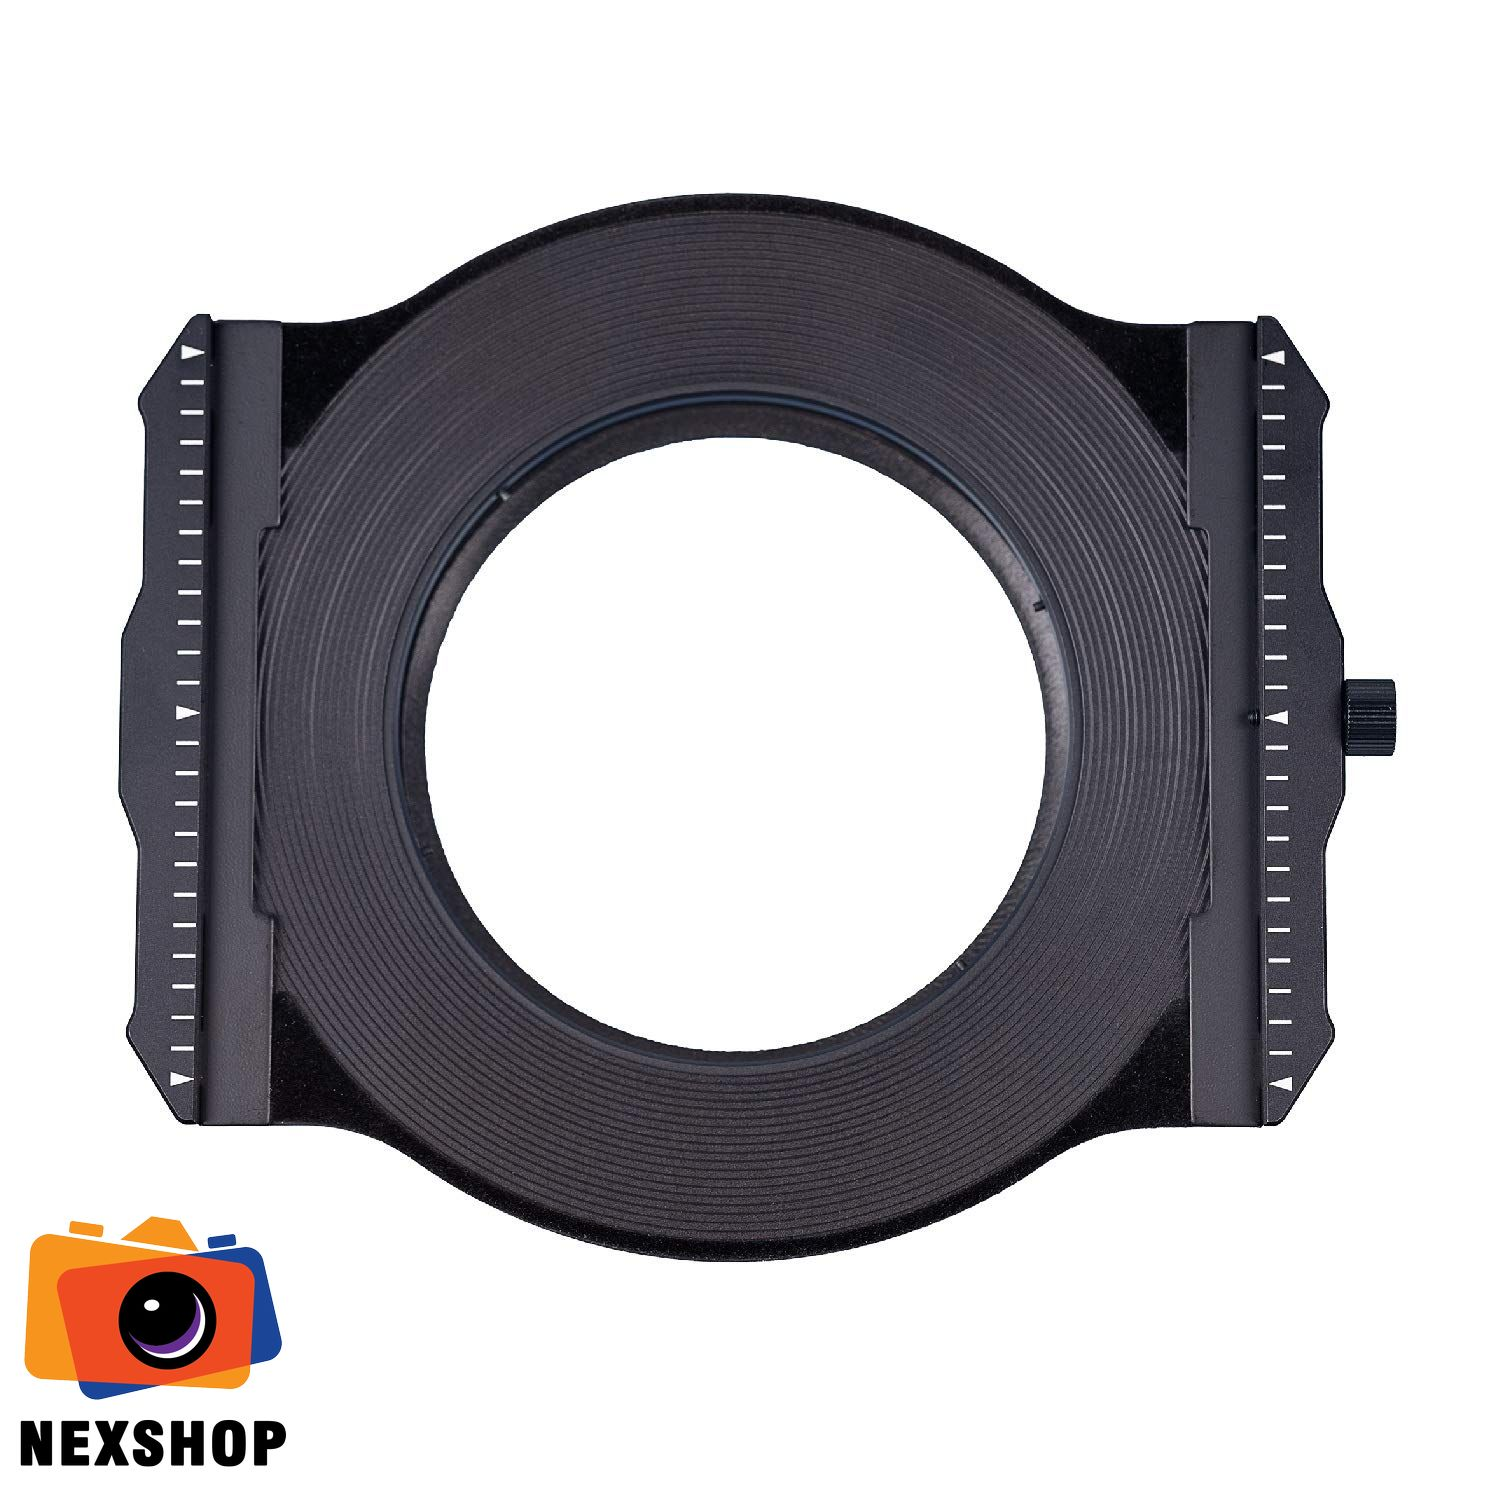 Magnetic Filter Holder System 100mm cho ống kính Laowa 10-18mm